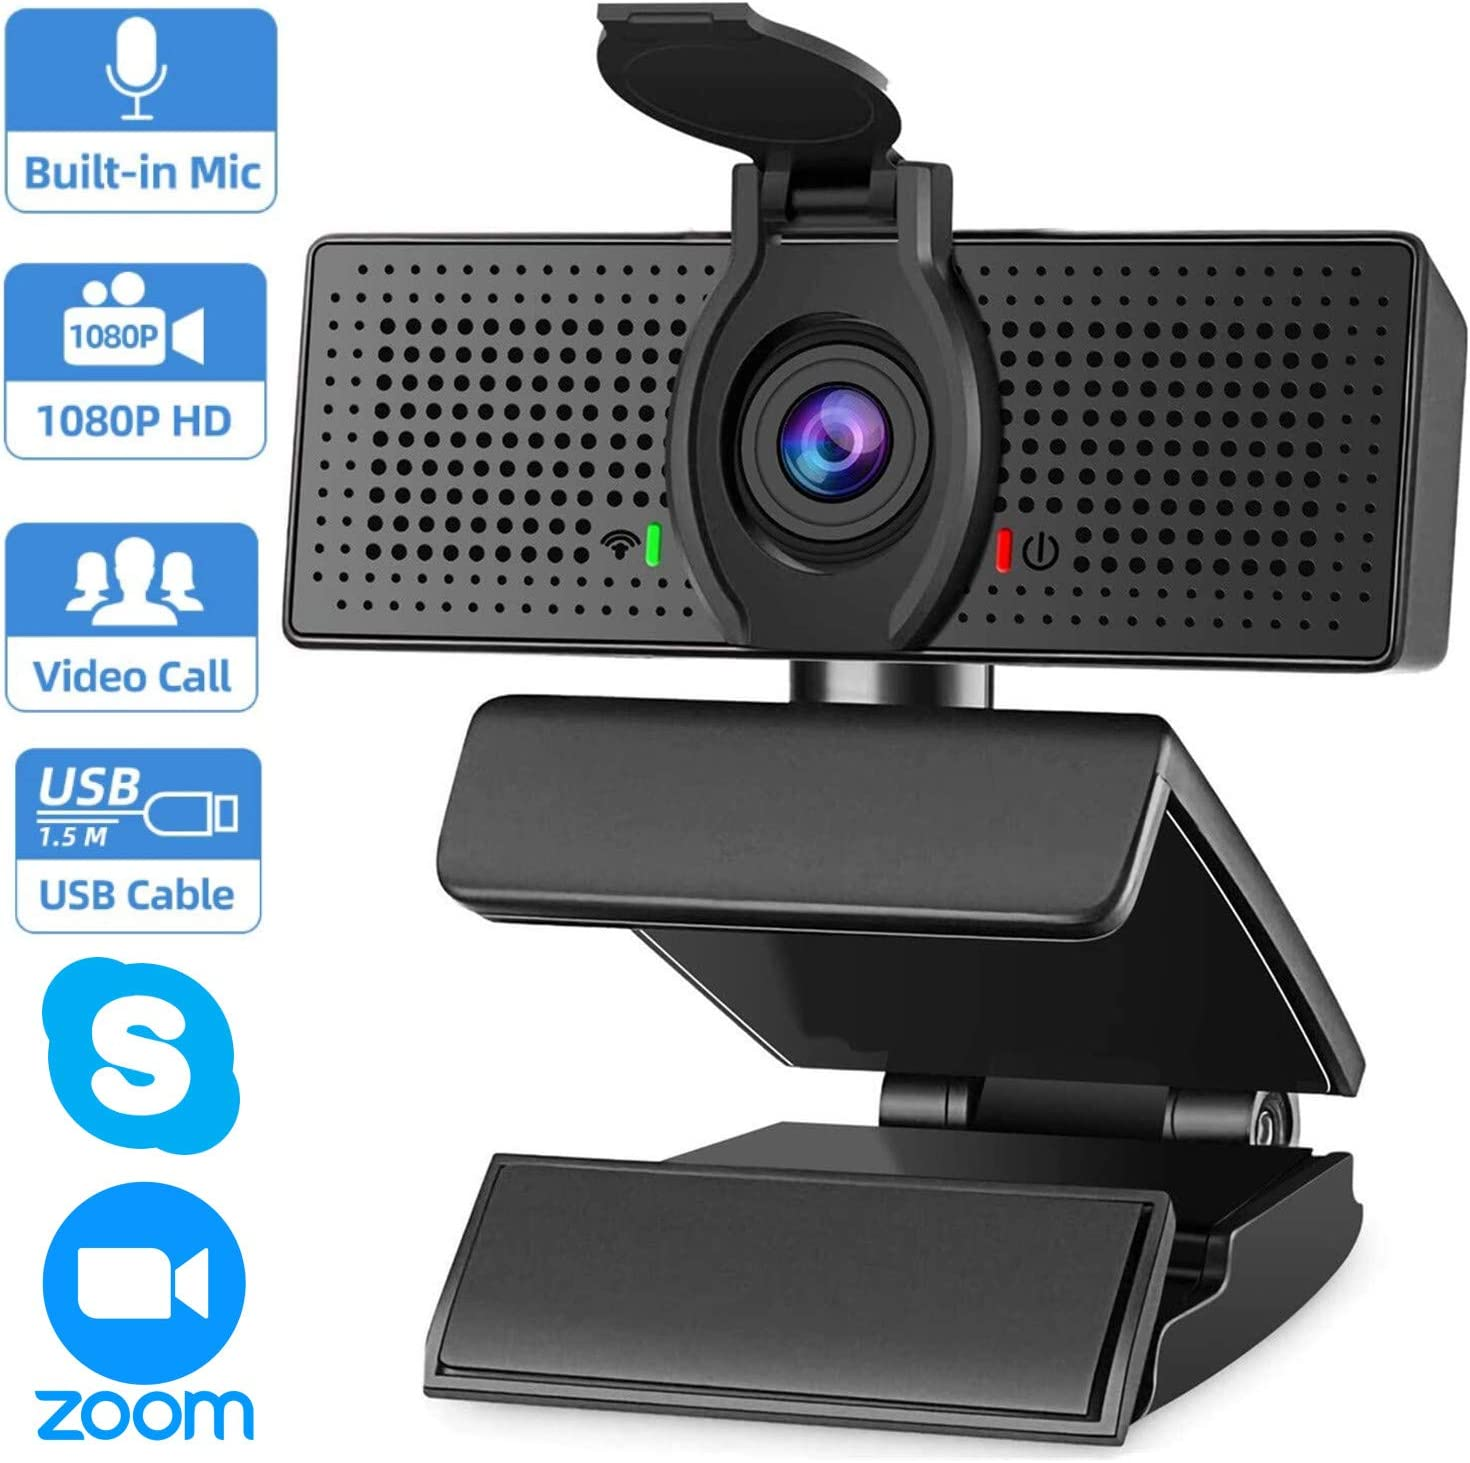 Webcam with Microphone & Privacy Cover, 1080p Streaming Computer Web Camera with Auto Light Correction, Plug and Play USB Webcam, Desktop Laptop PC Camera for Conference Video Calling Recording